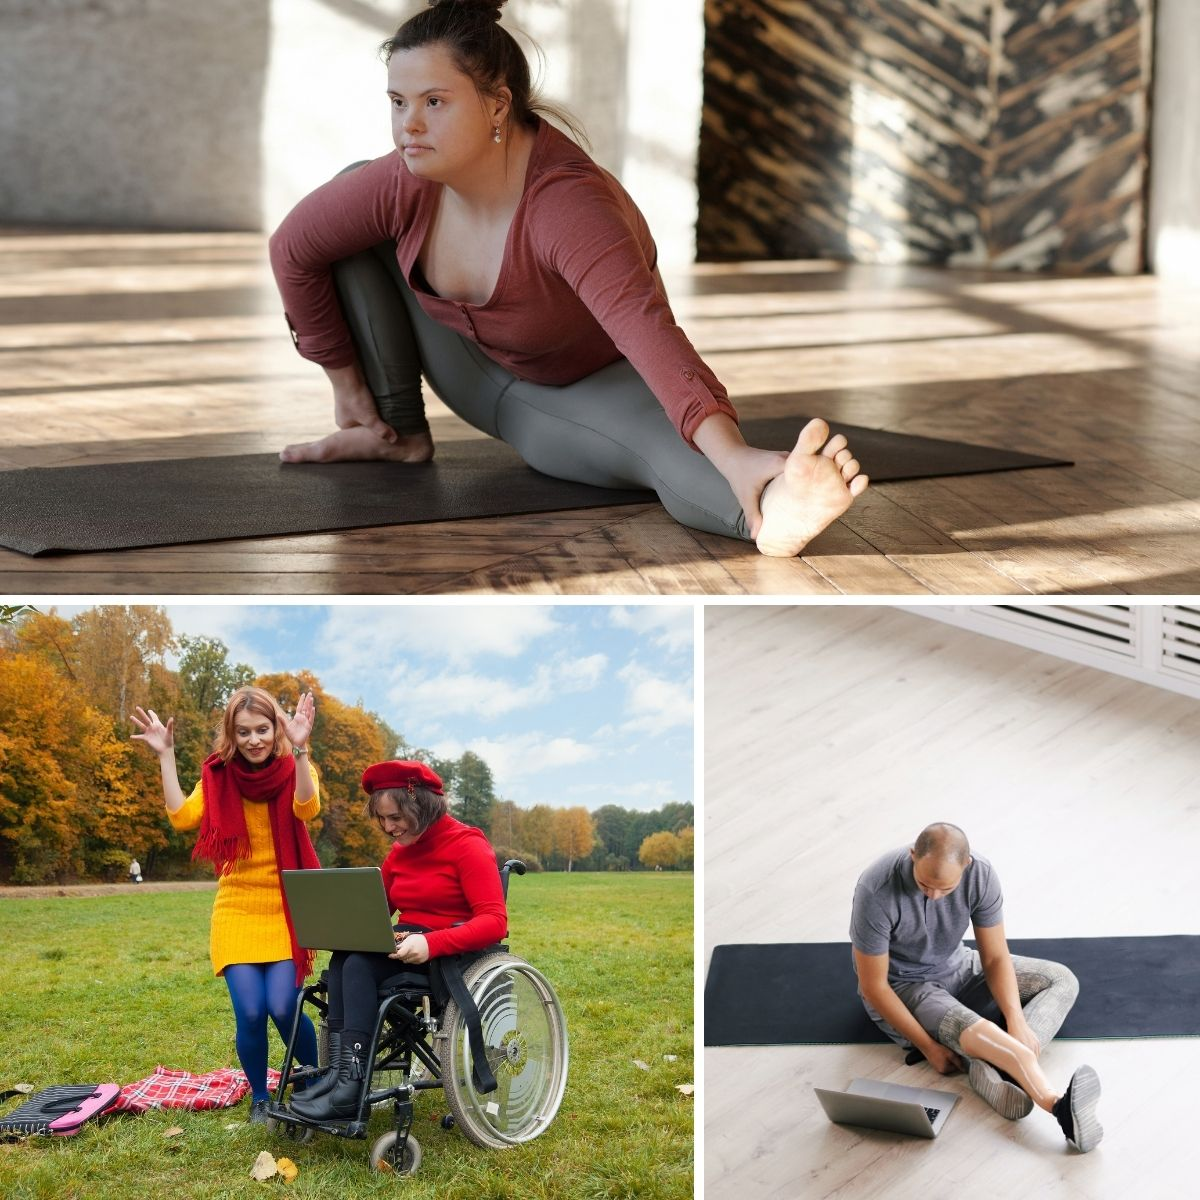 Benefits of Online Exercise